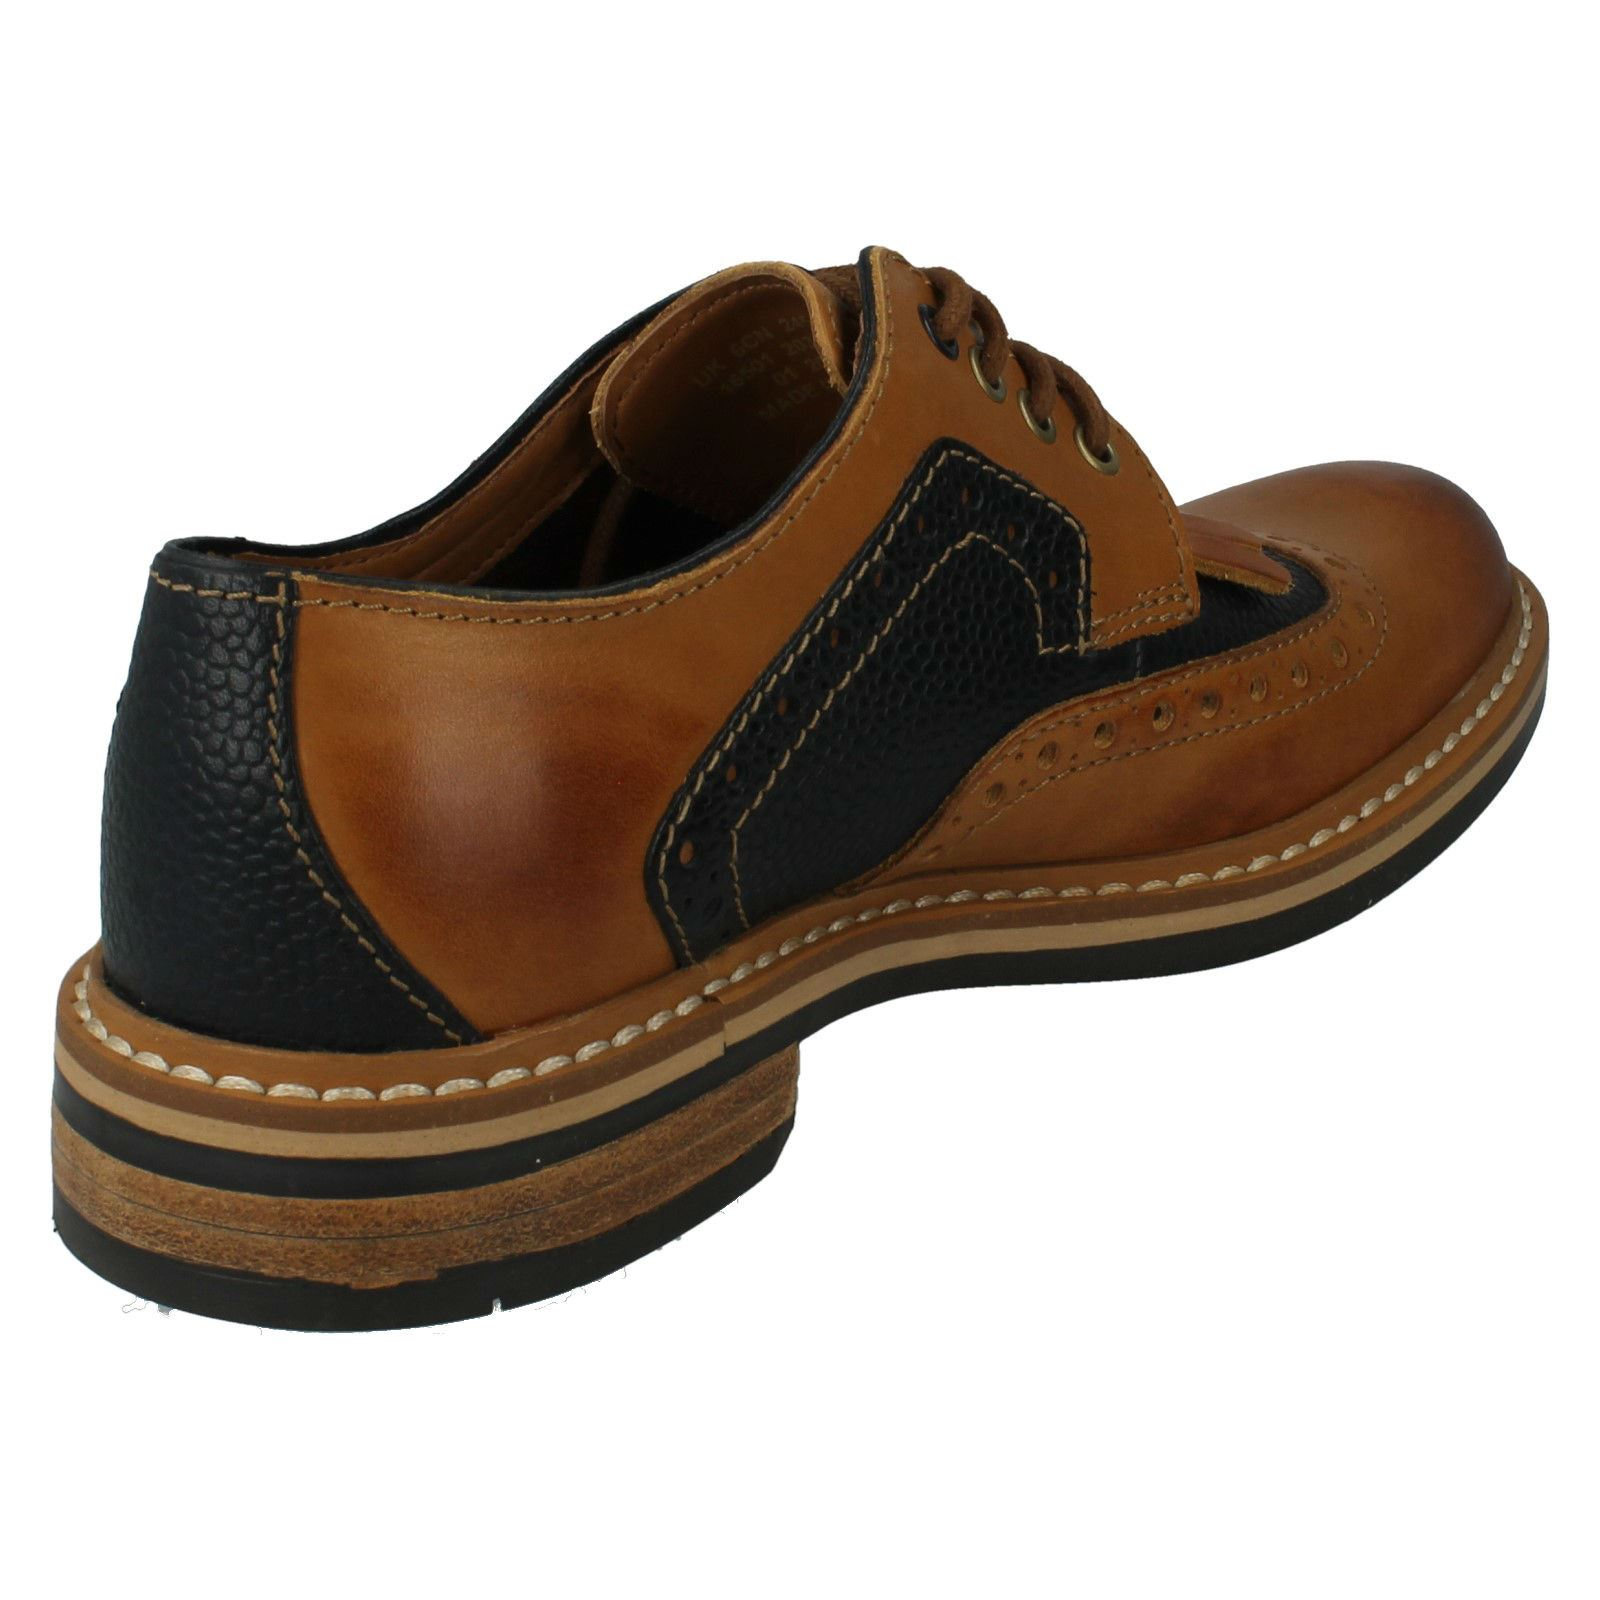 Men's Clarks Darby Casual Shoes Style - Darby Clarks Desert 011c68